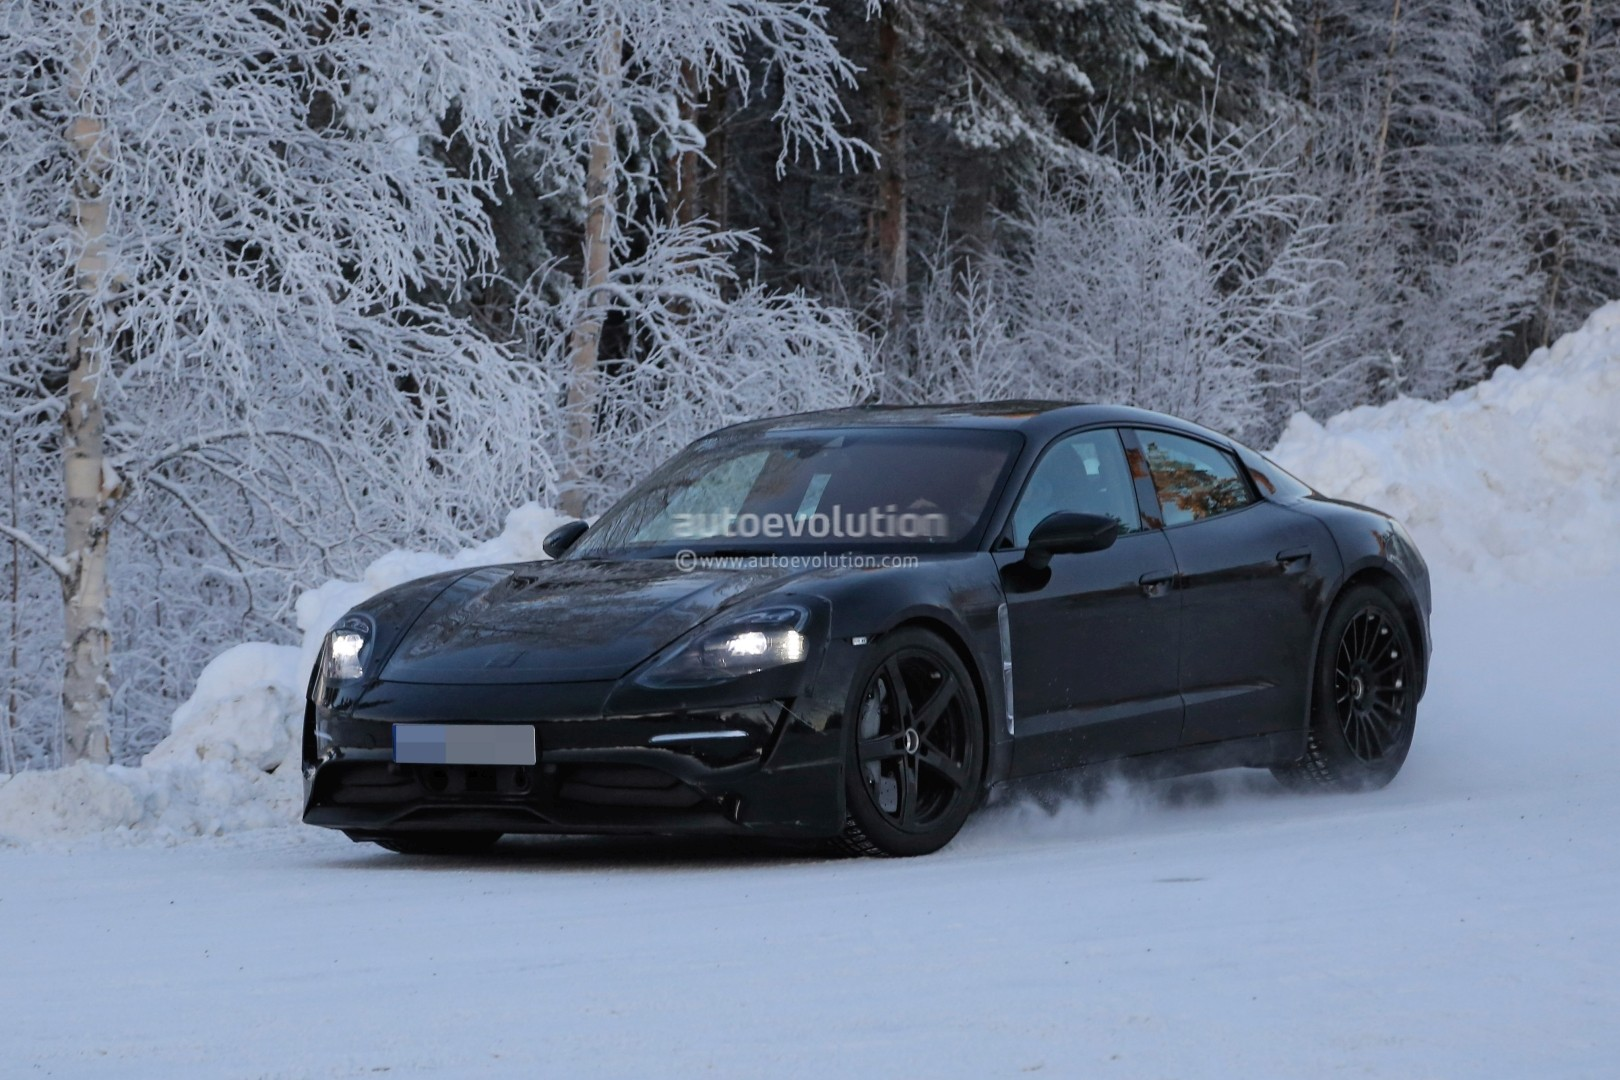 Porsche CEO confirms hybrid 911